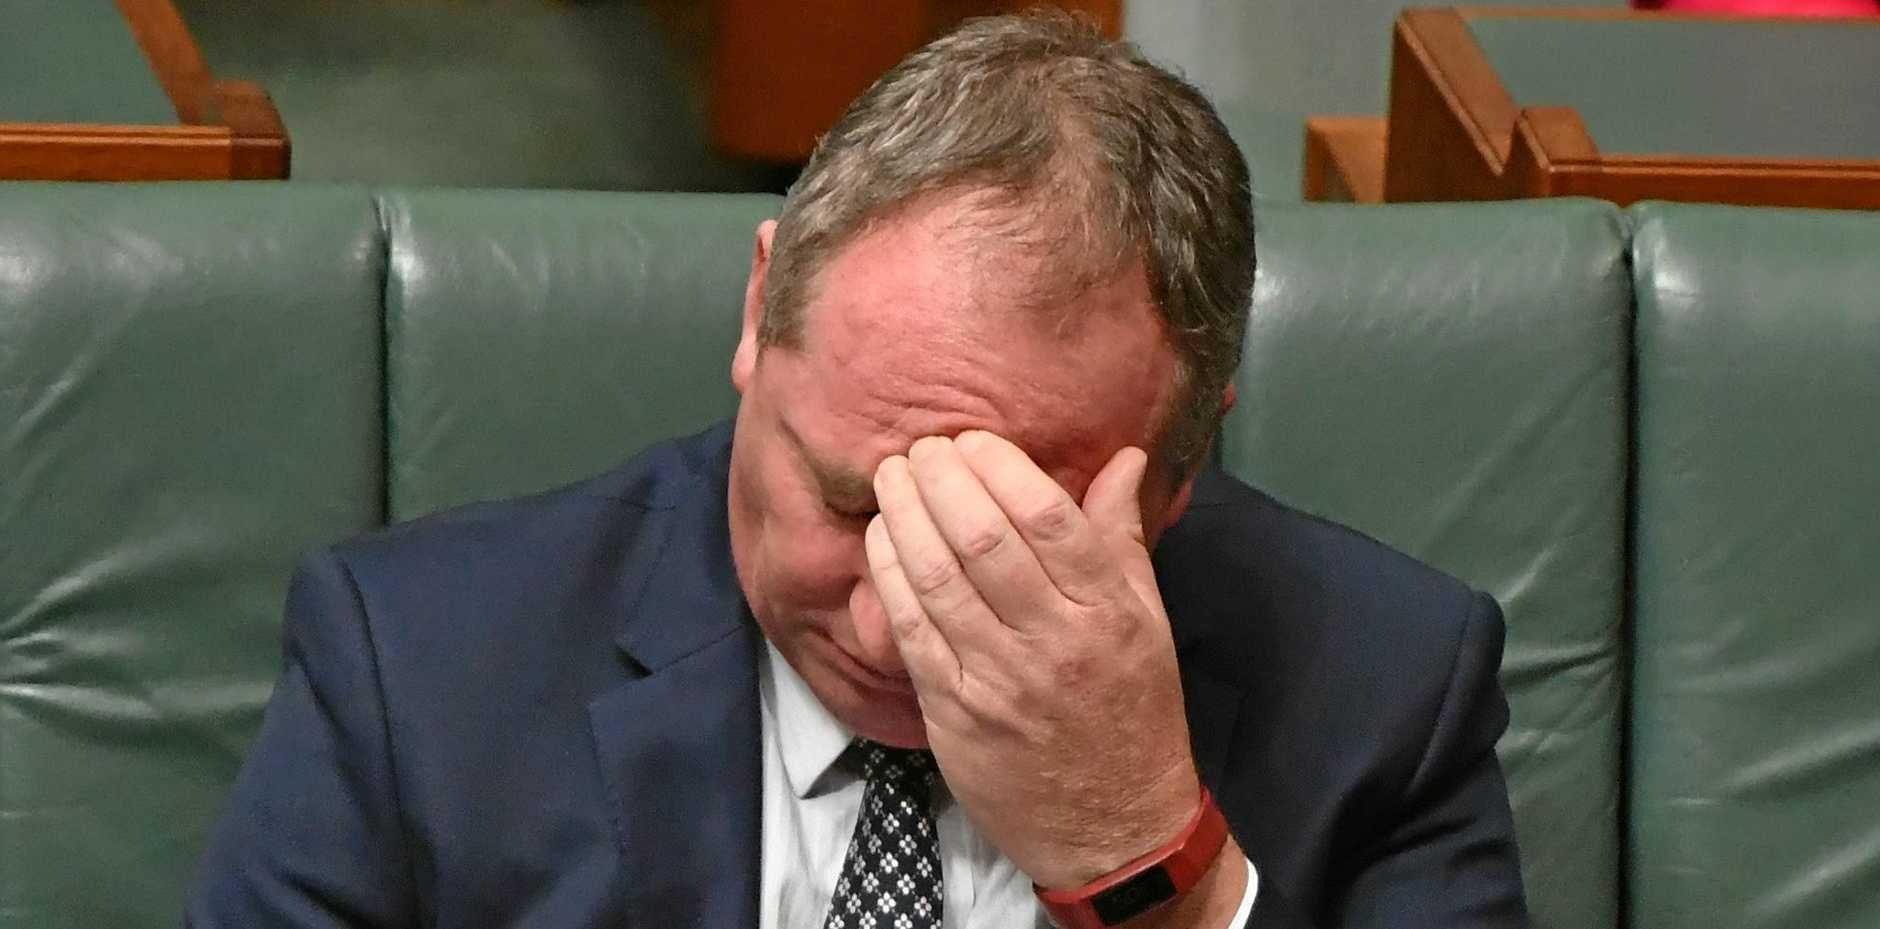 EMBATTLED: Former Deputy Prime Minister Barnaby Joyce during Question Time in the House of Representatives at Parliament House in Canberra in February.